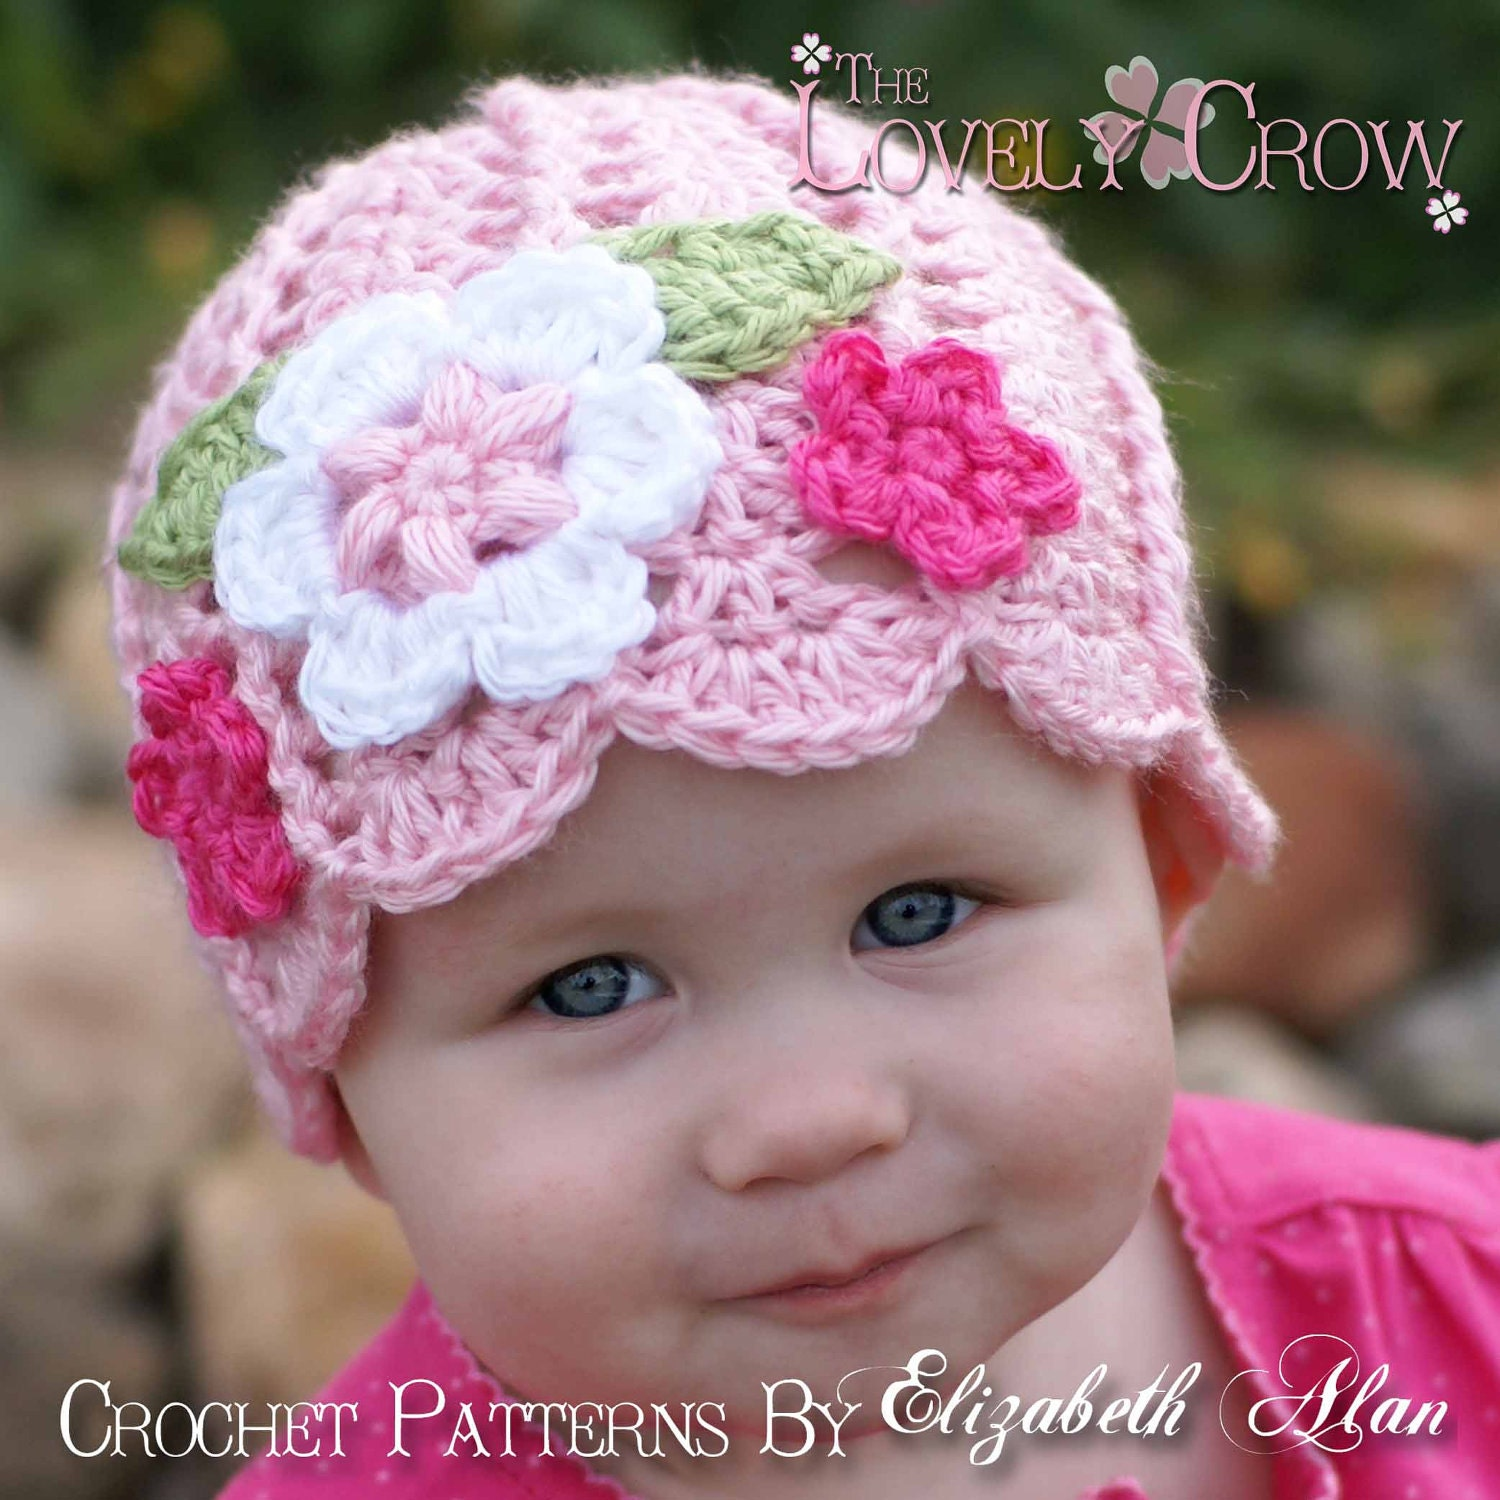 Free crochet baby beanie pattern with flower dancox for baby girl beanie crochet pattern baby beanie for by ebethalan bankloansurffo Image collections